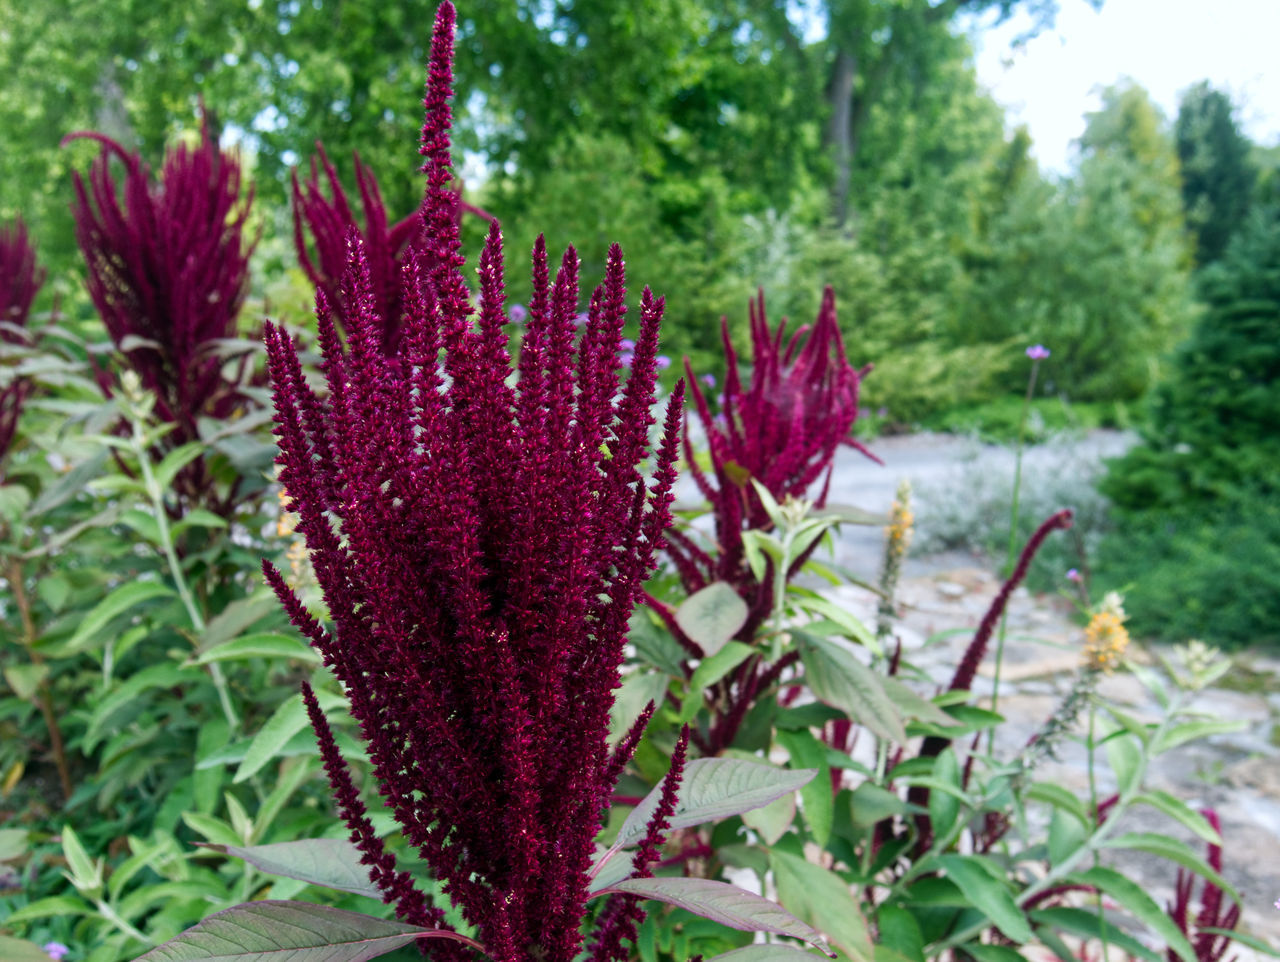 CLOSE-UP OF PURPLE FLOWERING PLANT IN SUNLIGHT